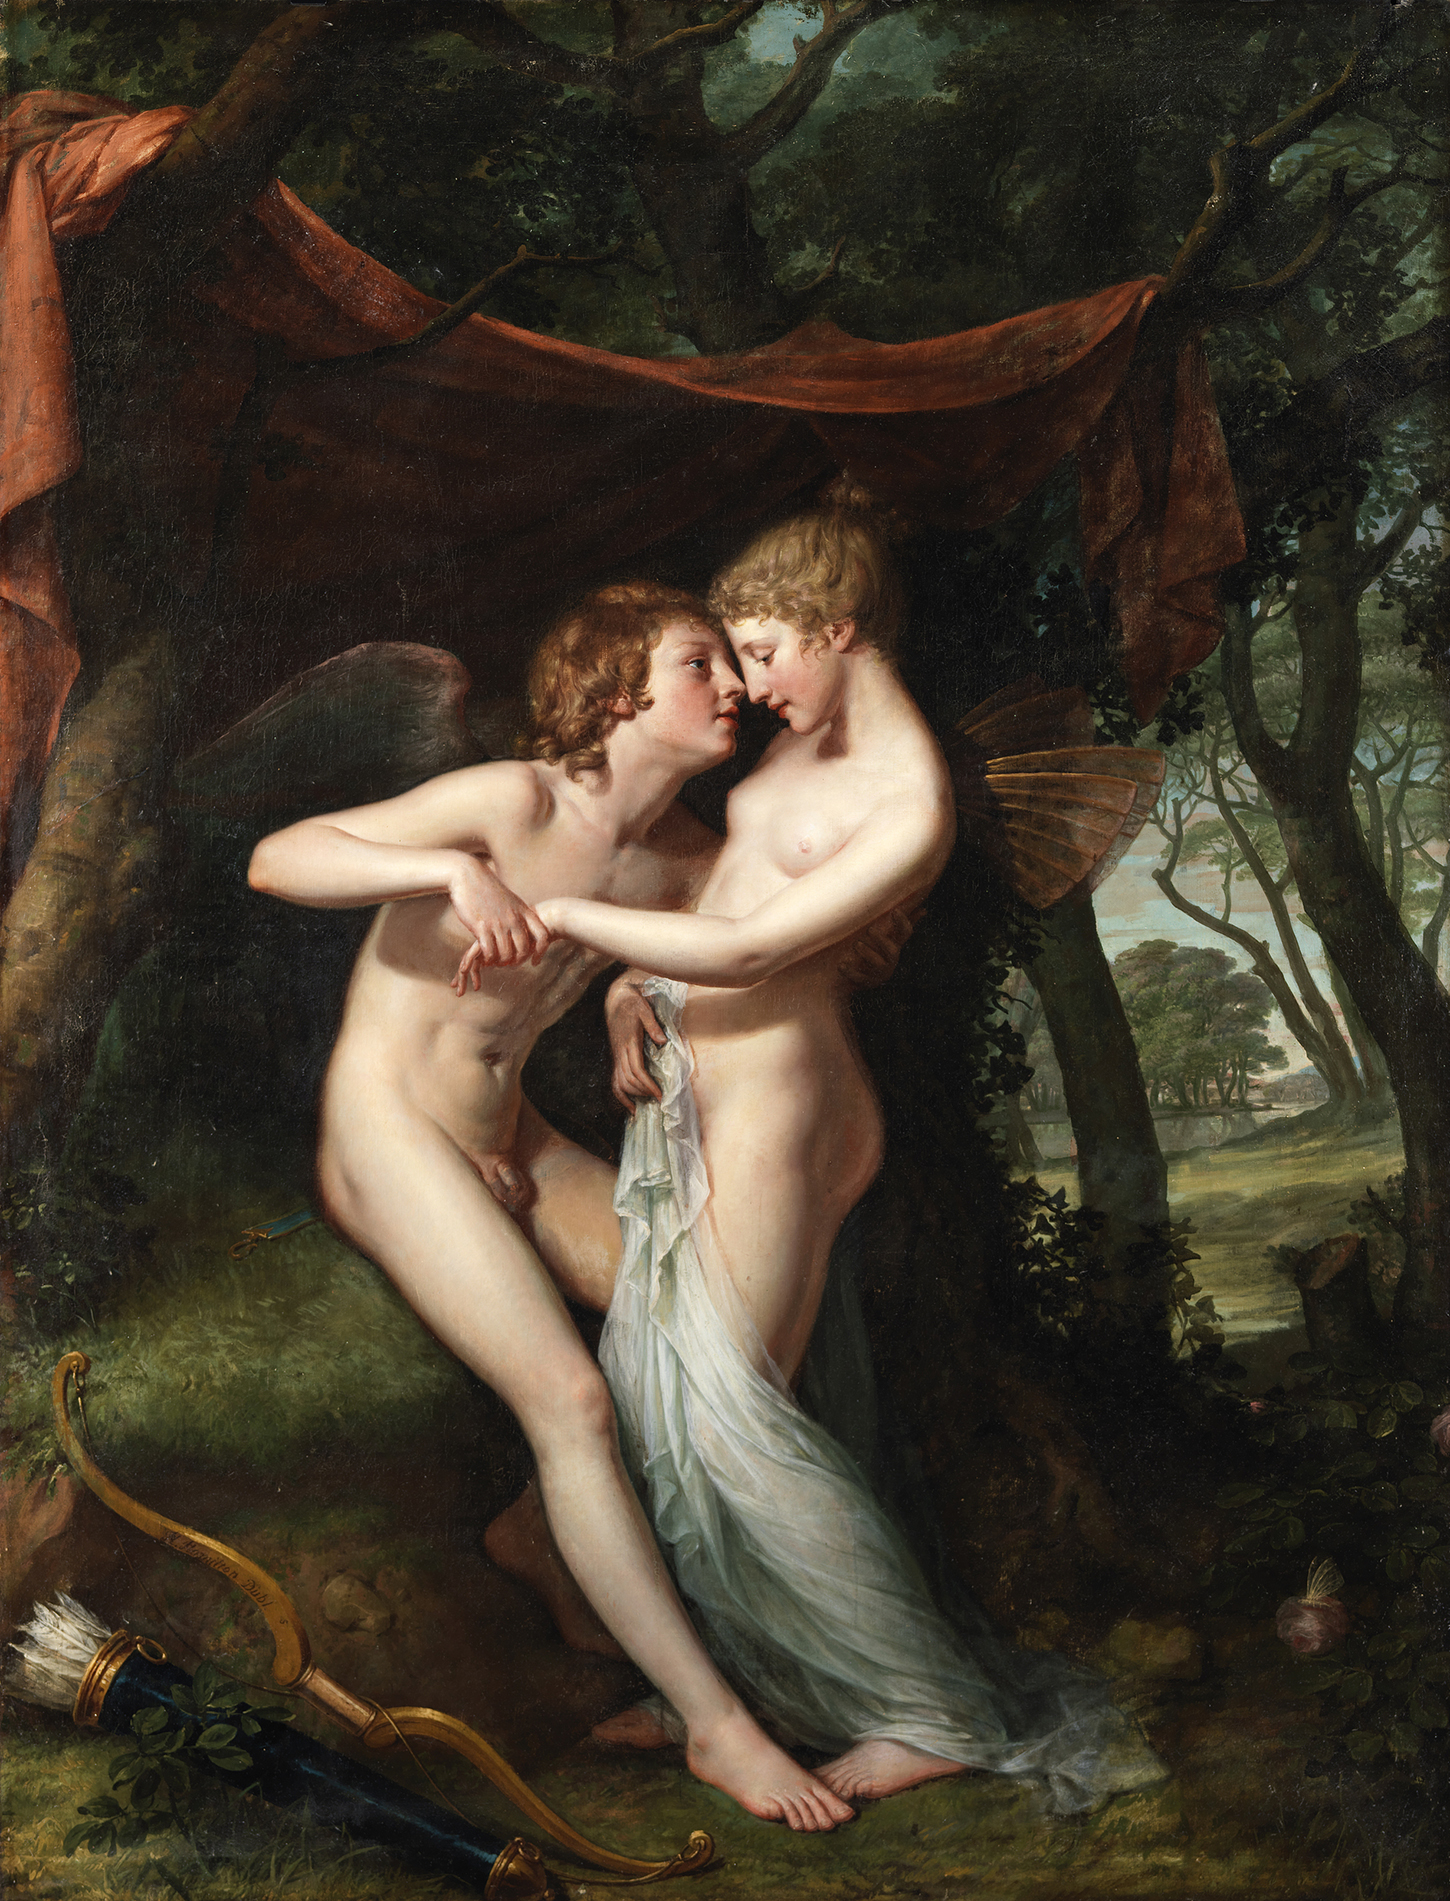 Cupid and Psyche stand in the Nuptial Bower